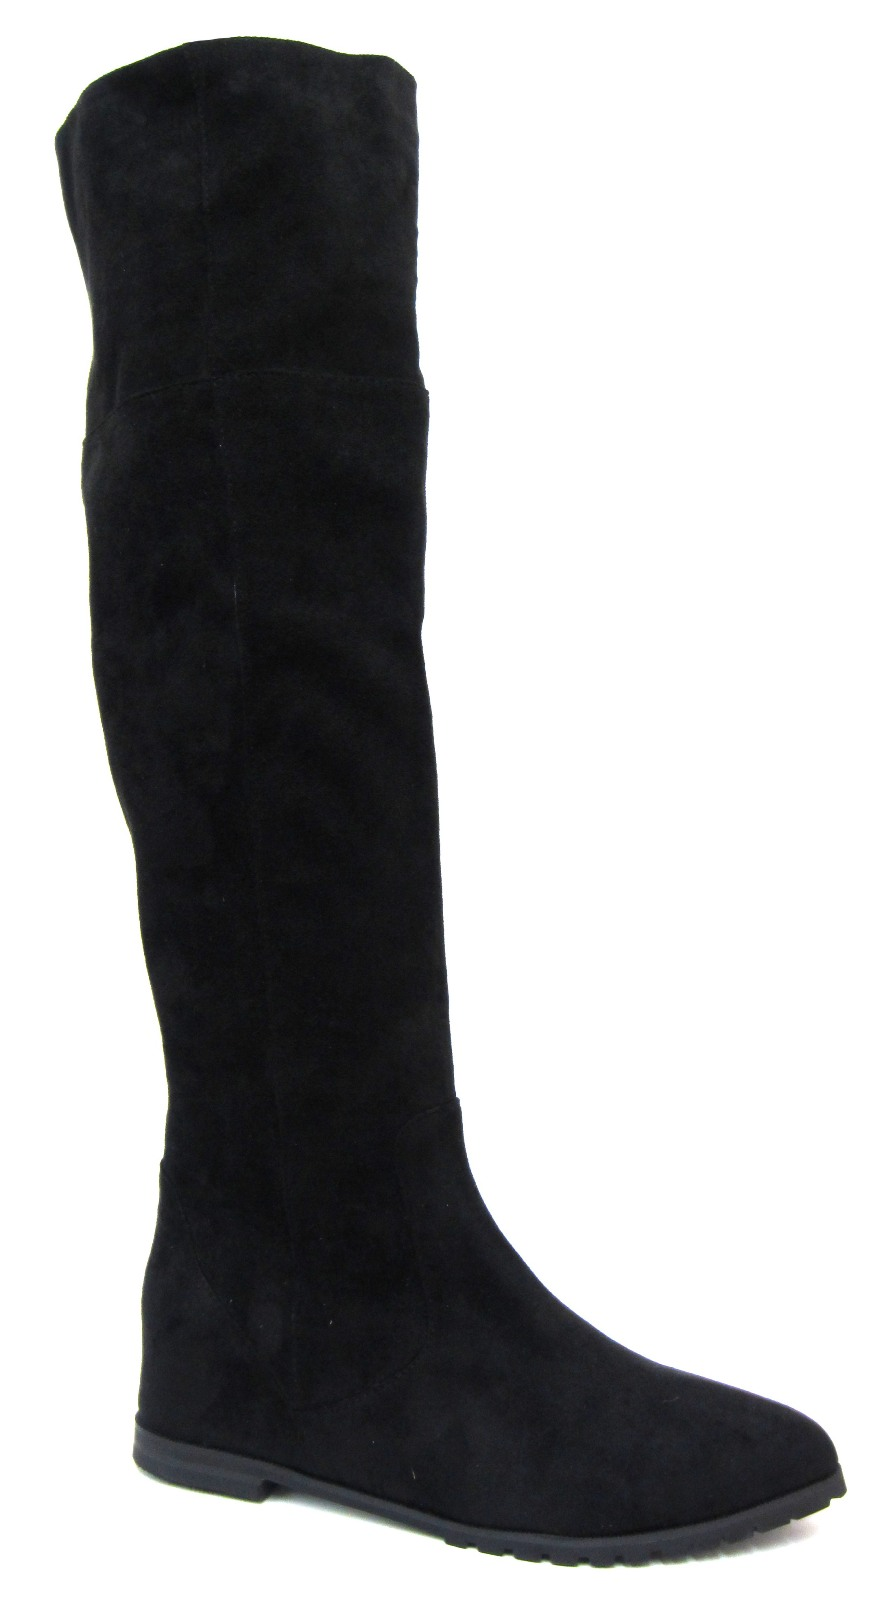 Womens Faux Suede Leather Flat Riding Knee High Boots Ladies Shoes ...